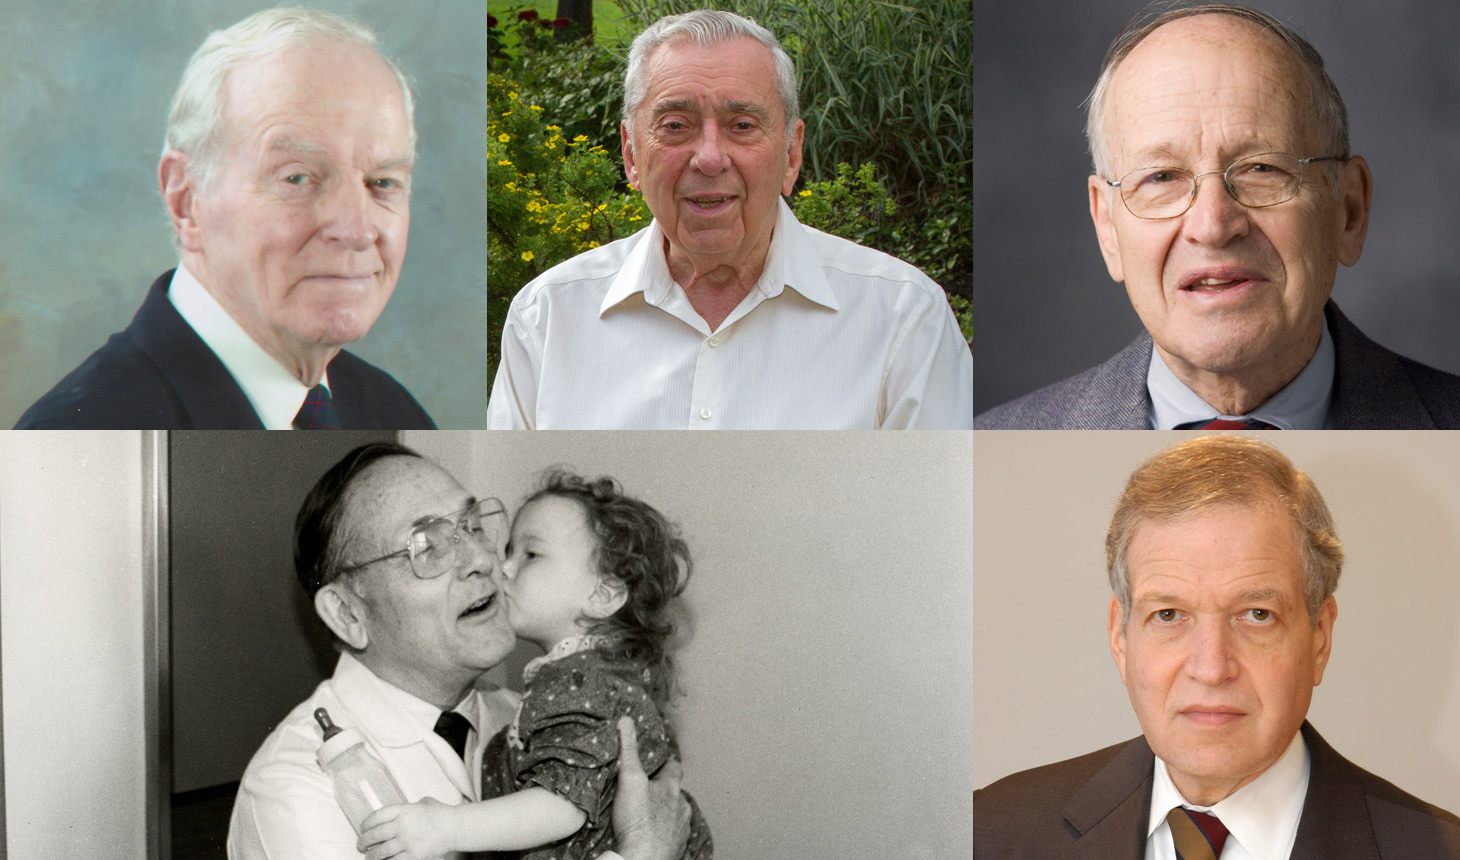 Geisel's Alumni Council will present its inaugural alumni achievement awards to these distinguished alumni: (top left to right) John M. Moran, MD, D'54, MED'55, James C. Strickler, MD, DC'50, MED'51, and Samuel L. Katz, MD, DC'48, MED'50, and (left to right) W. Hardy Hendren III, MD, D'47, MED'50 and Robert L. Thurer, MD, DC'67, MED'68.  The alumni will then engage in a panel discussion about their education and careers in medicine and take questions from the audience.